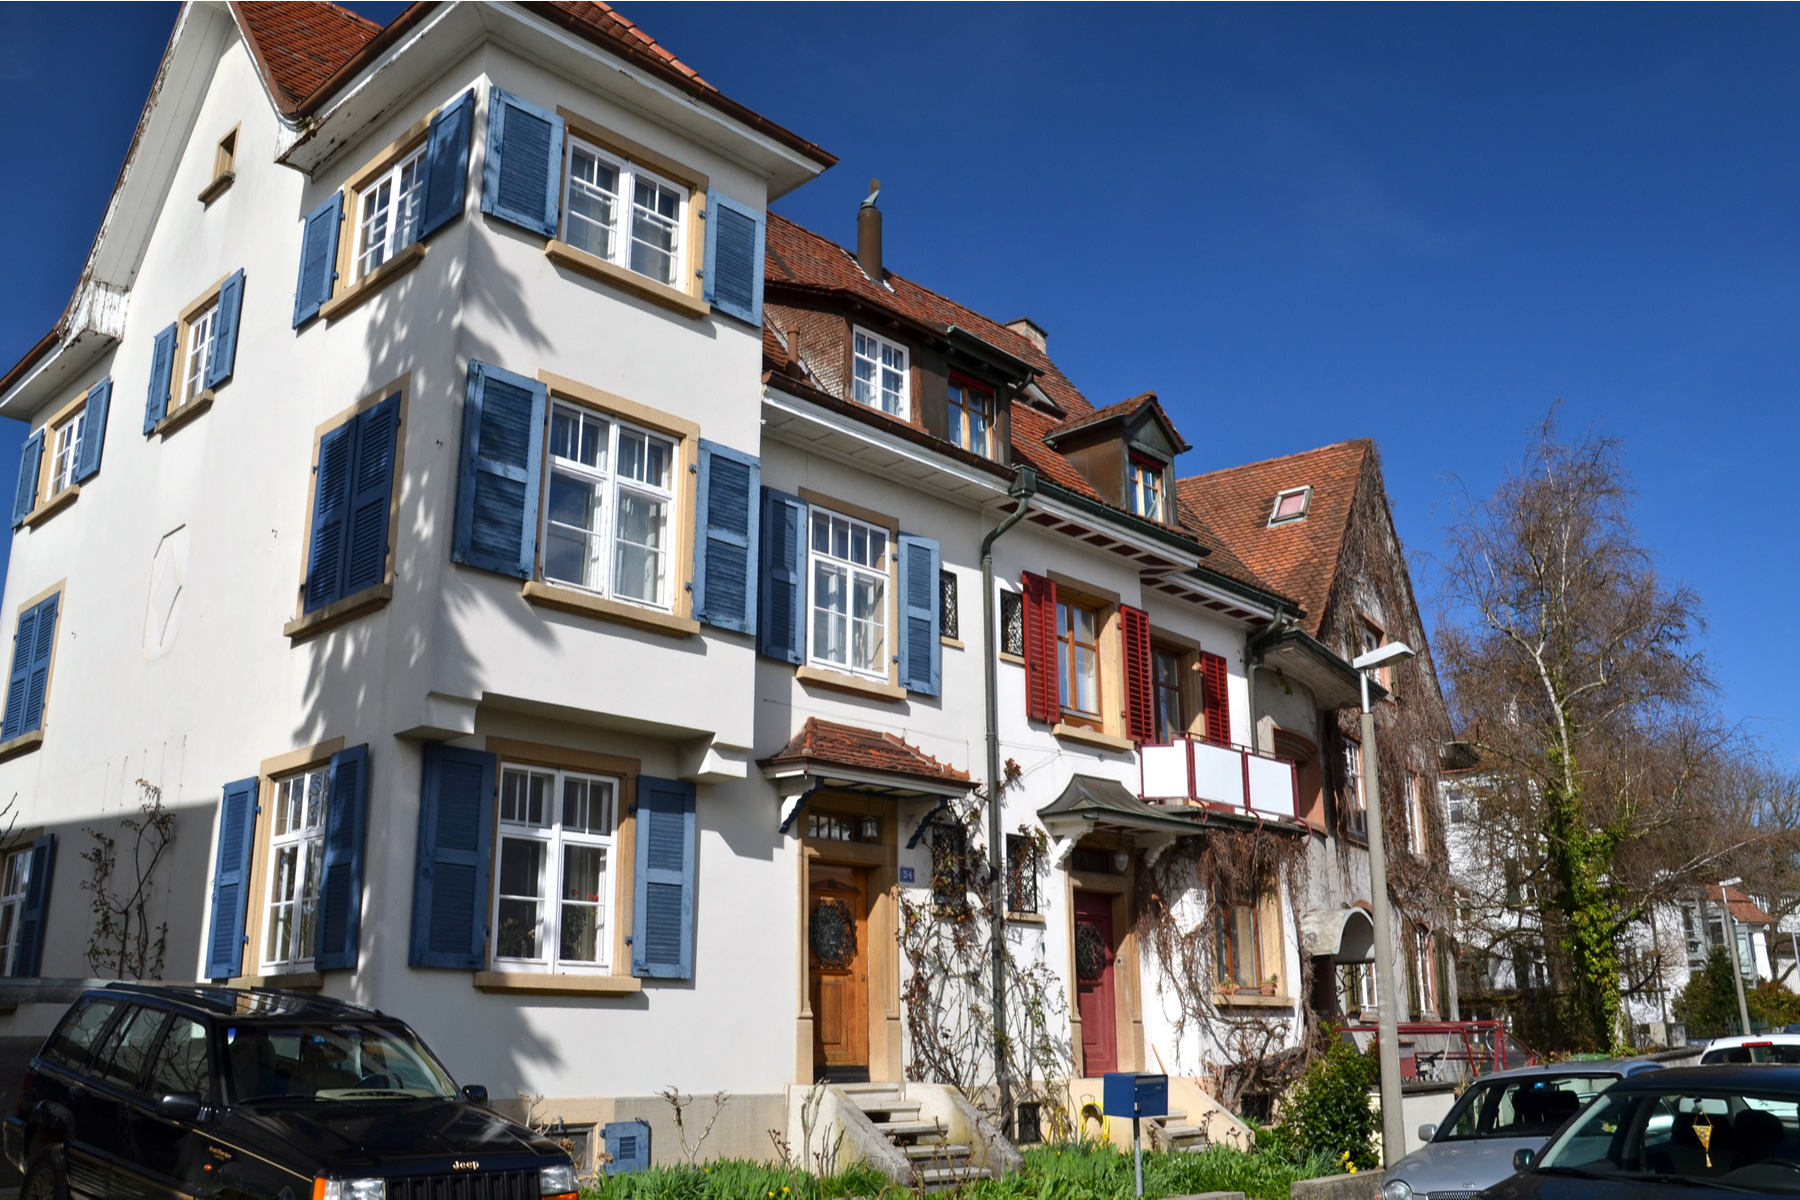 Homes in Riehen